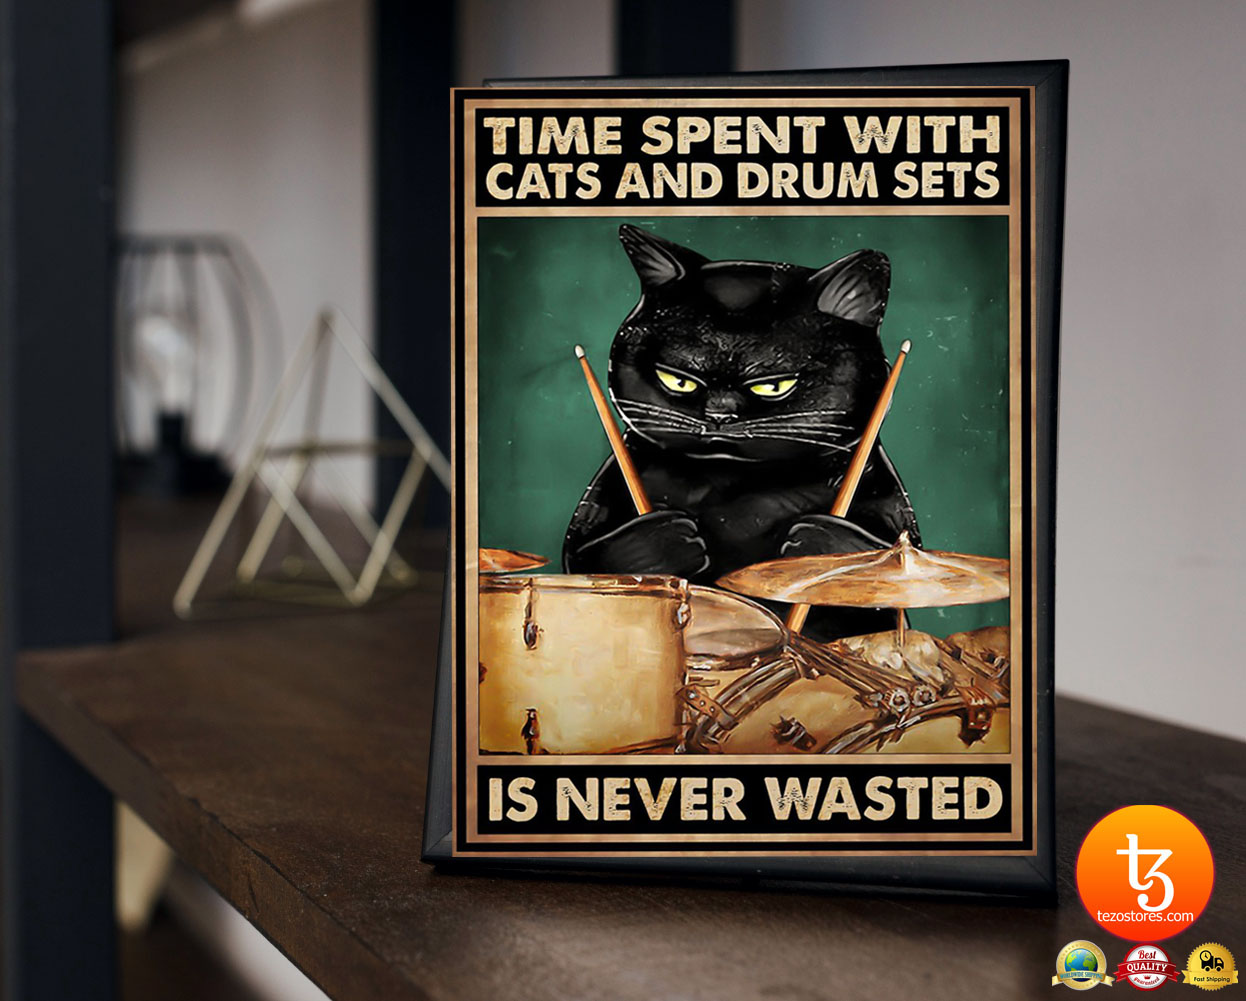 Time spent with cats and drum sets is never wasted poster 21